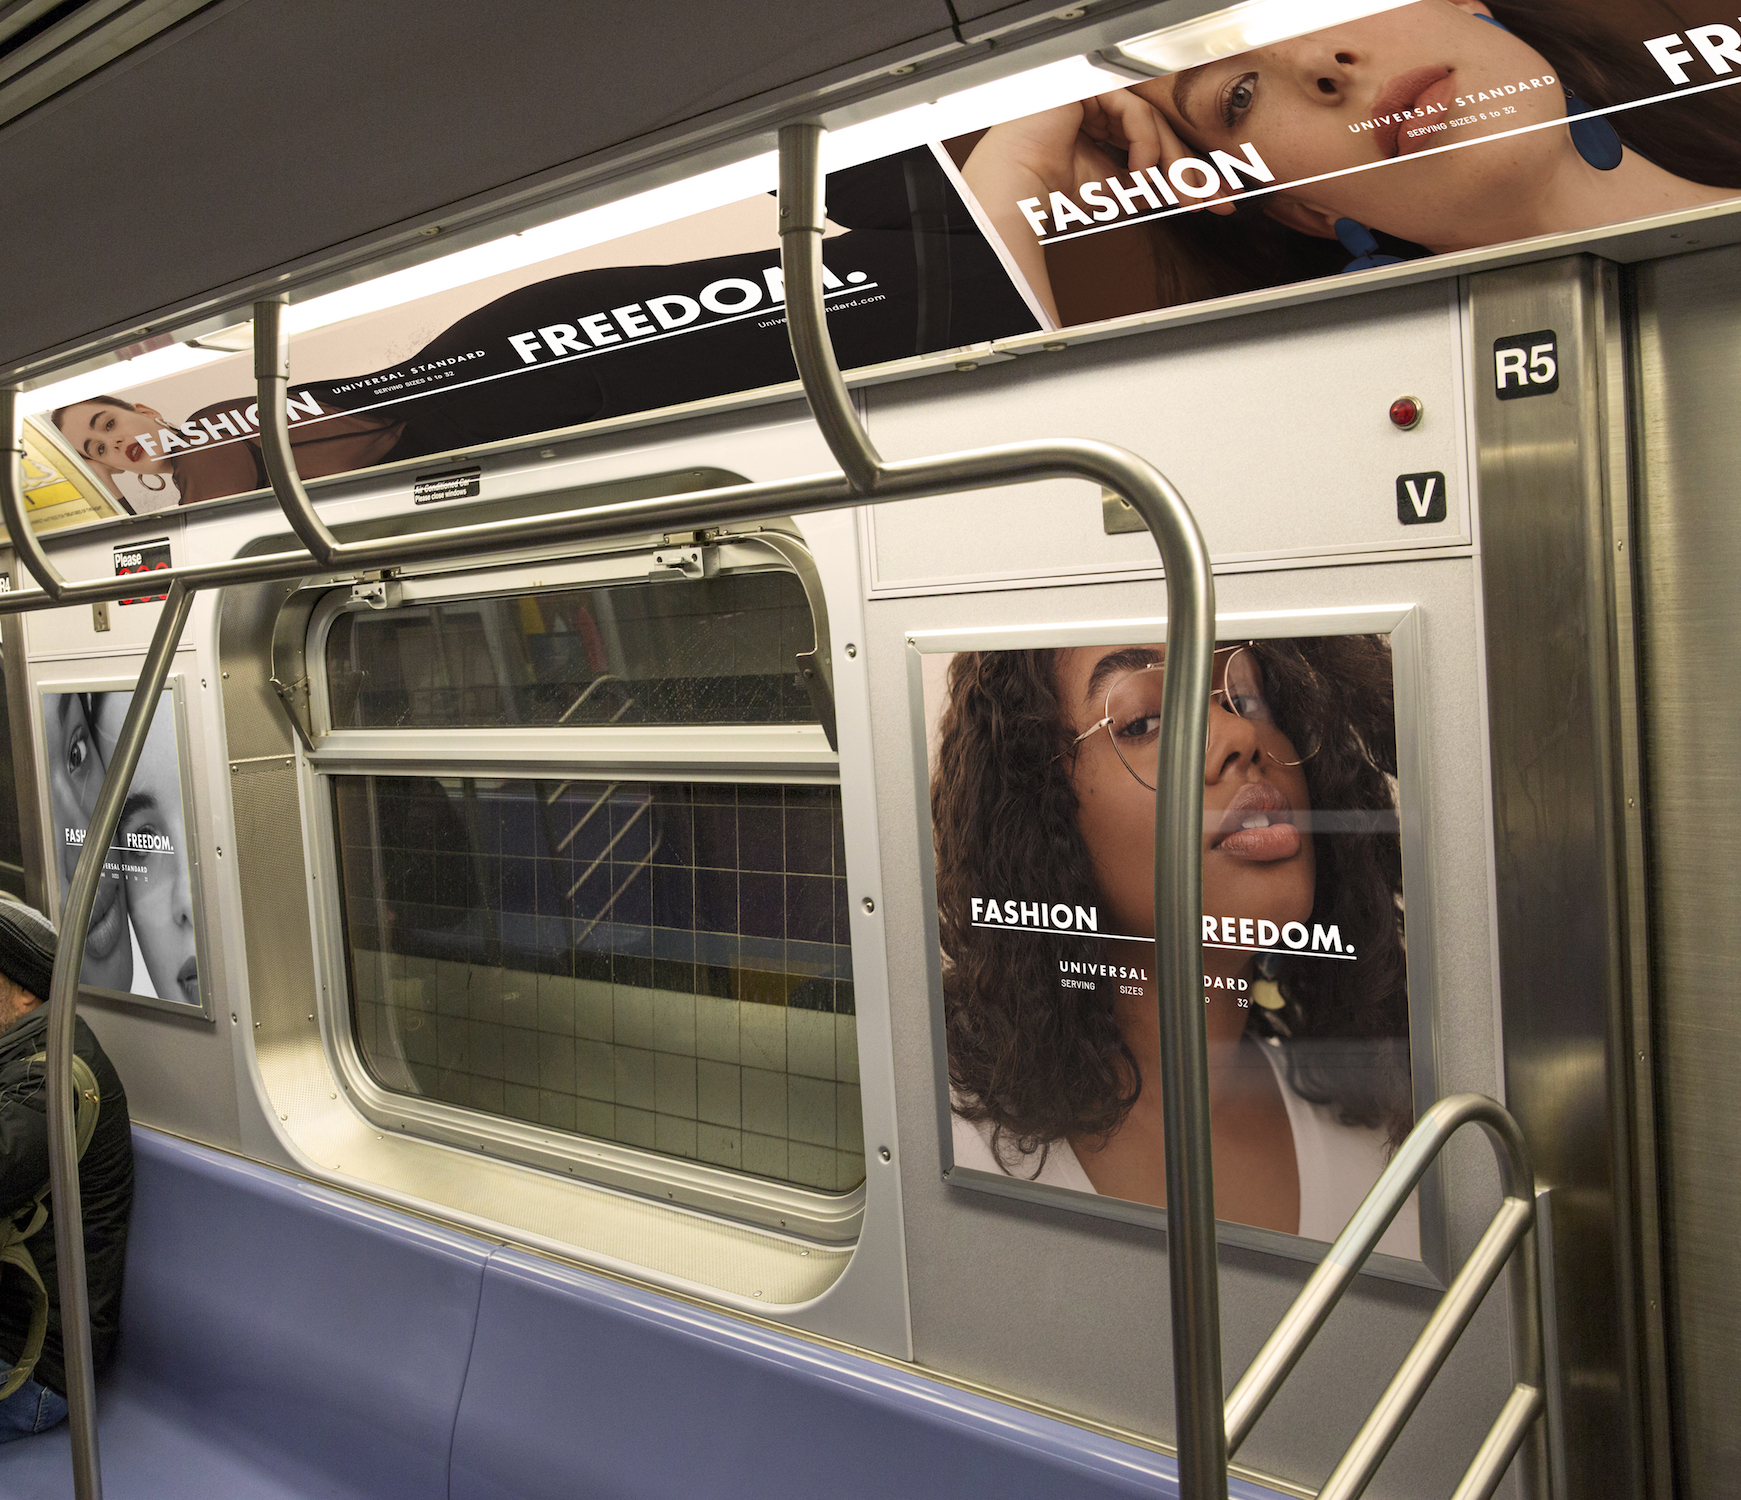 Universal Standard's campaign in New York City subways.